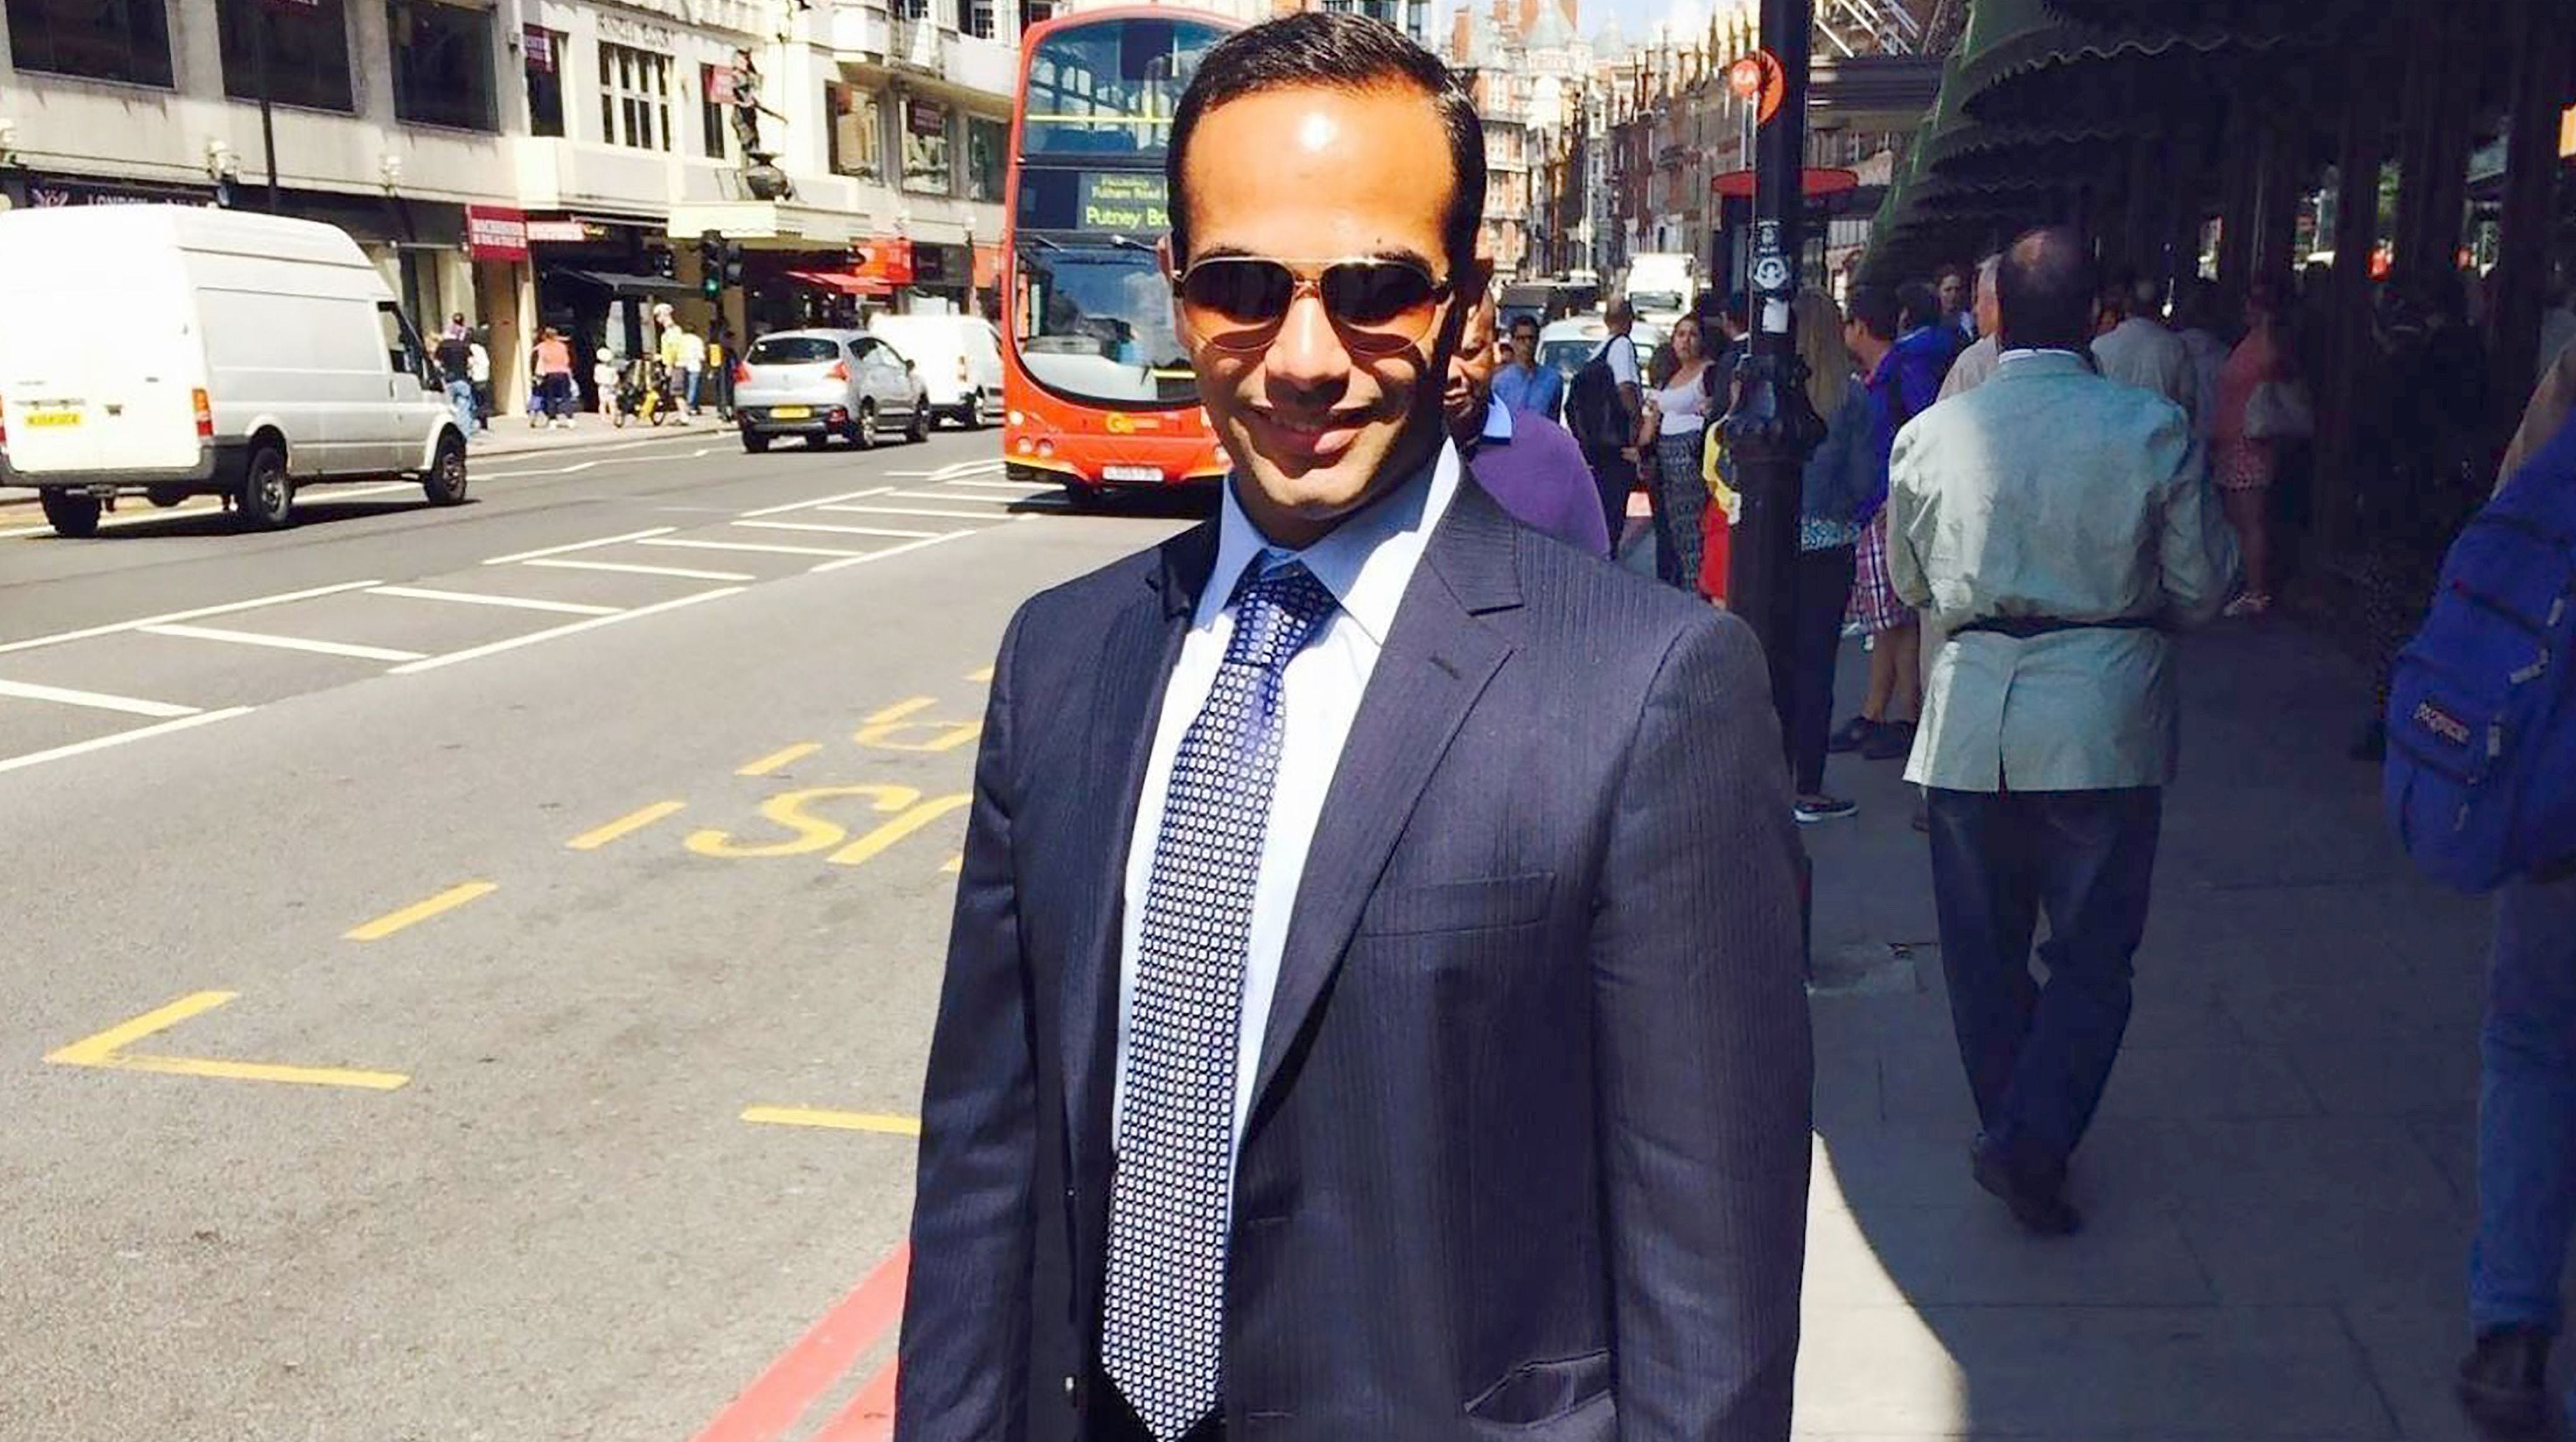 Former Trump aide George Papadopoulos gets two-week prison sentence for lying to FBI about Russian election 'dirt'